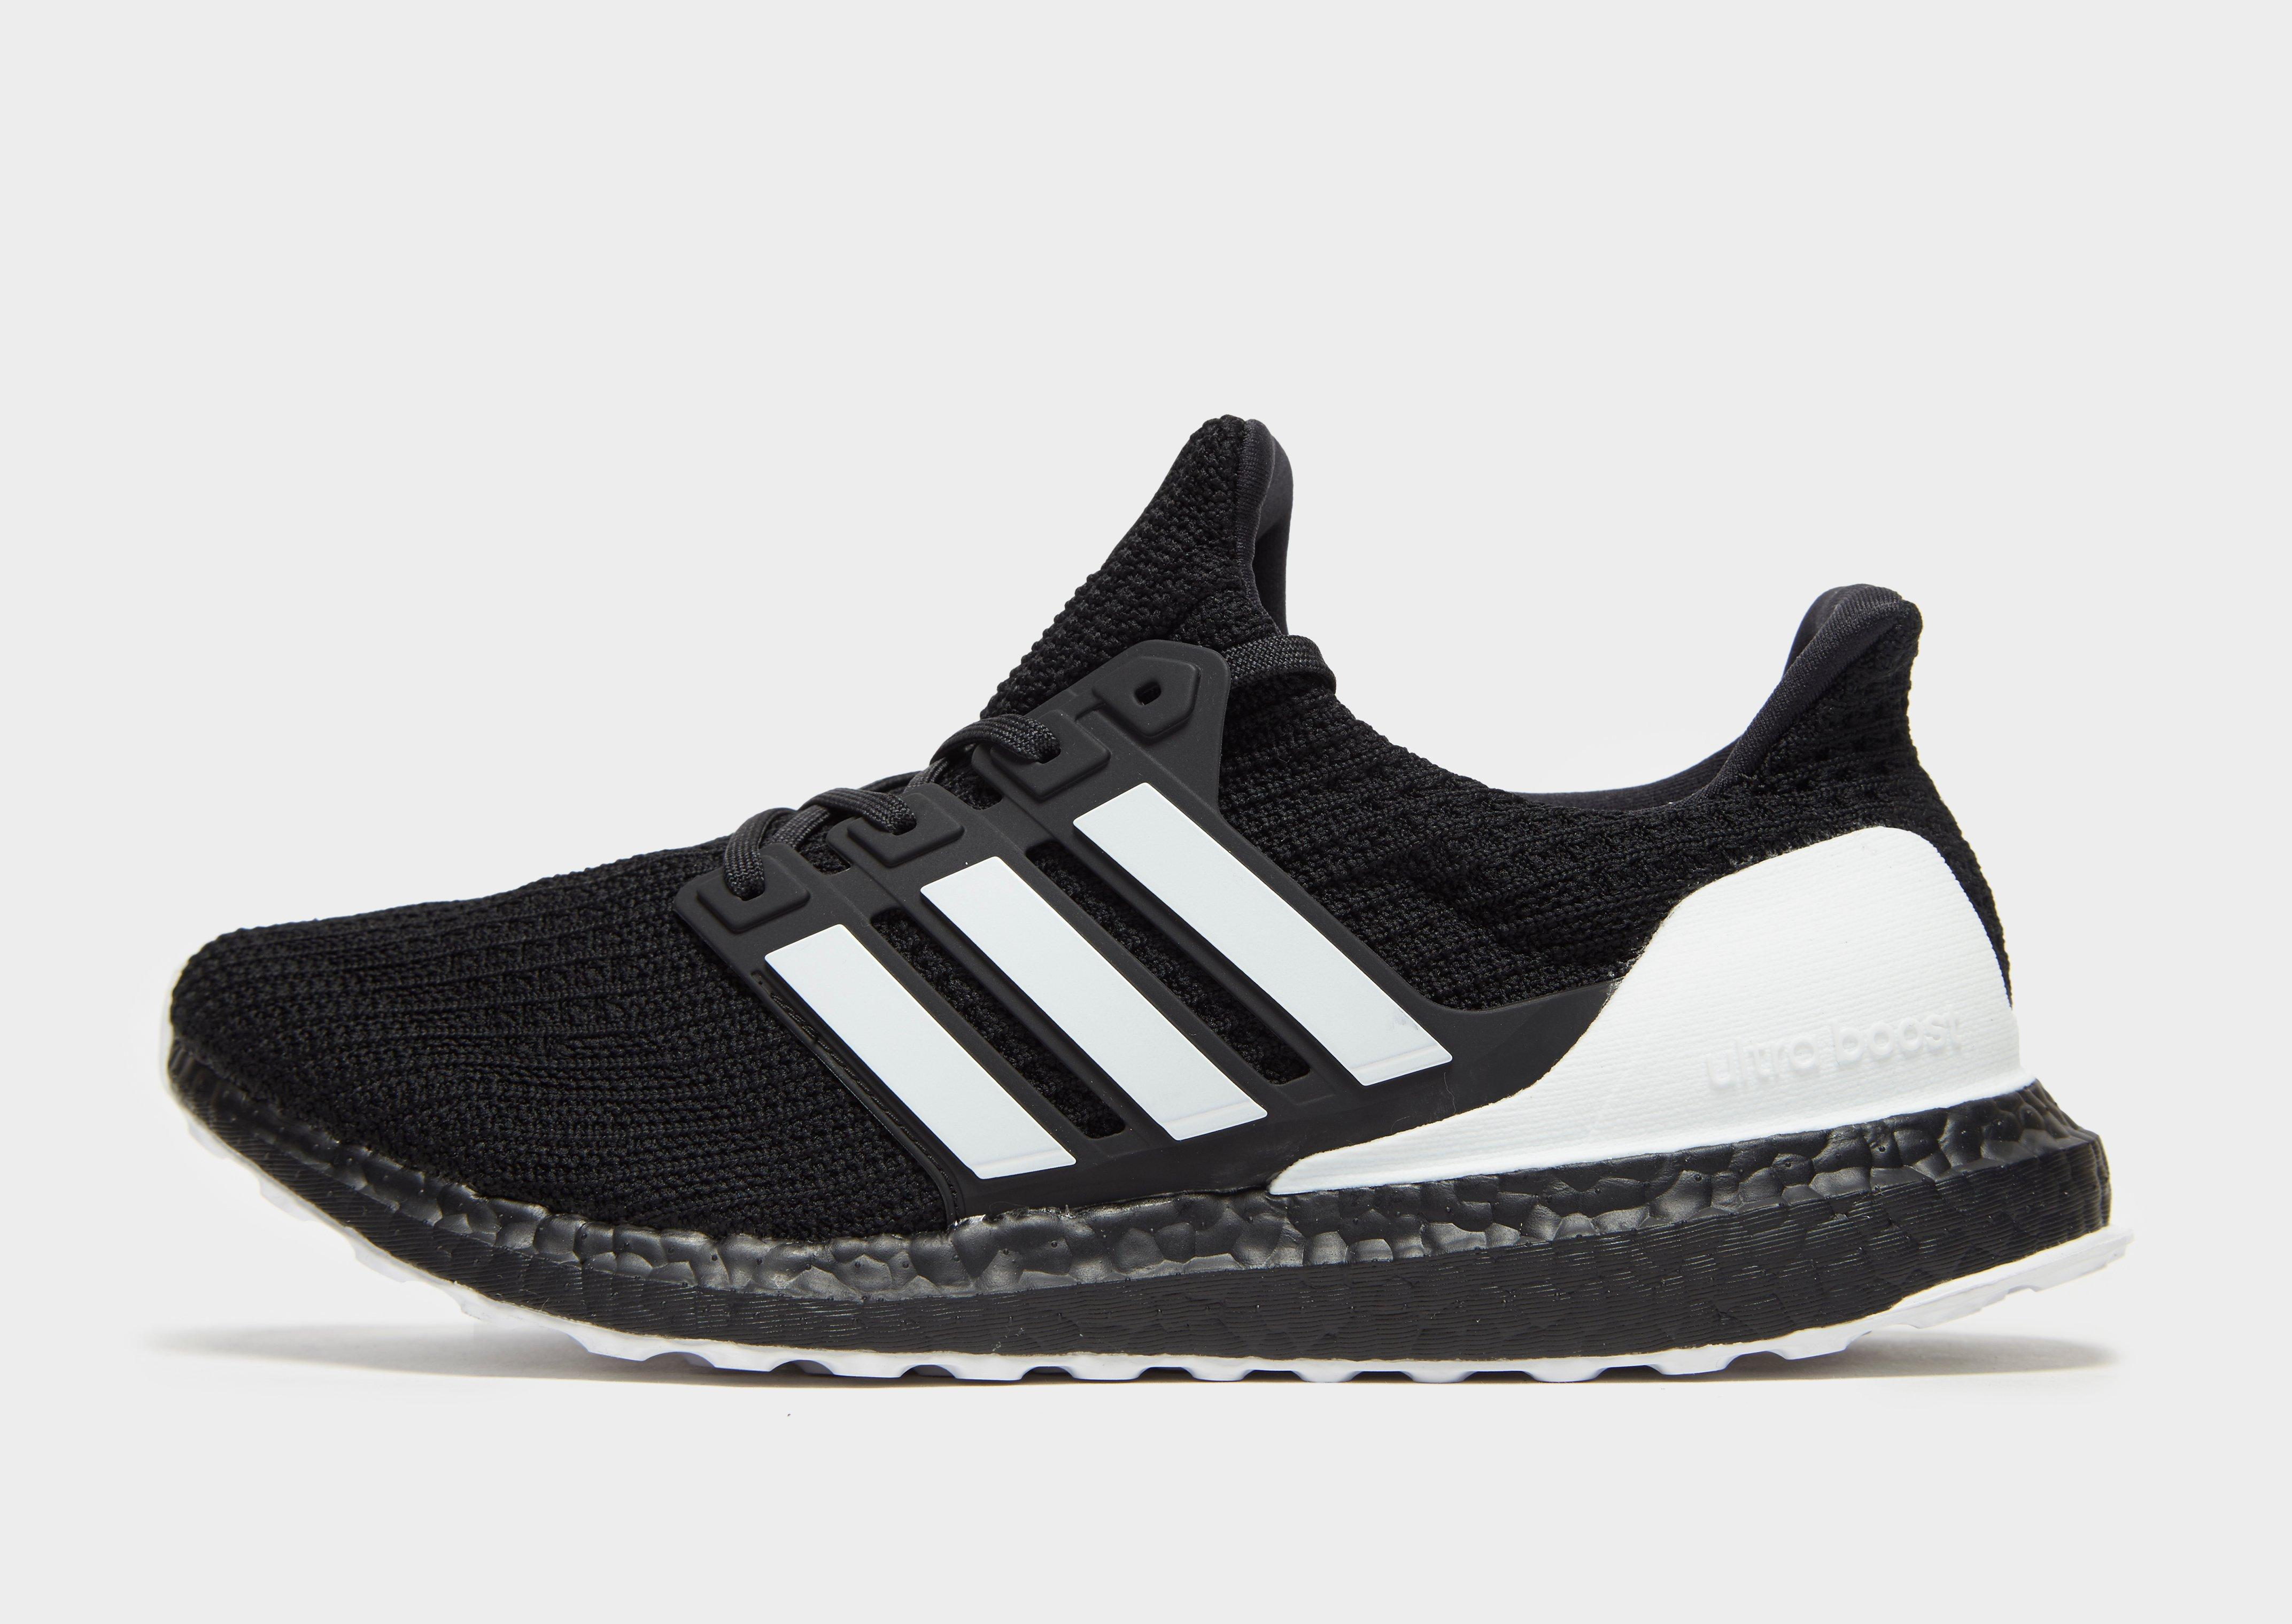 promo code 1c9d1 59f9e adidas Synthetic Ultra Boost Dna in Black/White (Black) for ...